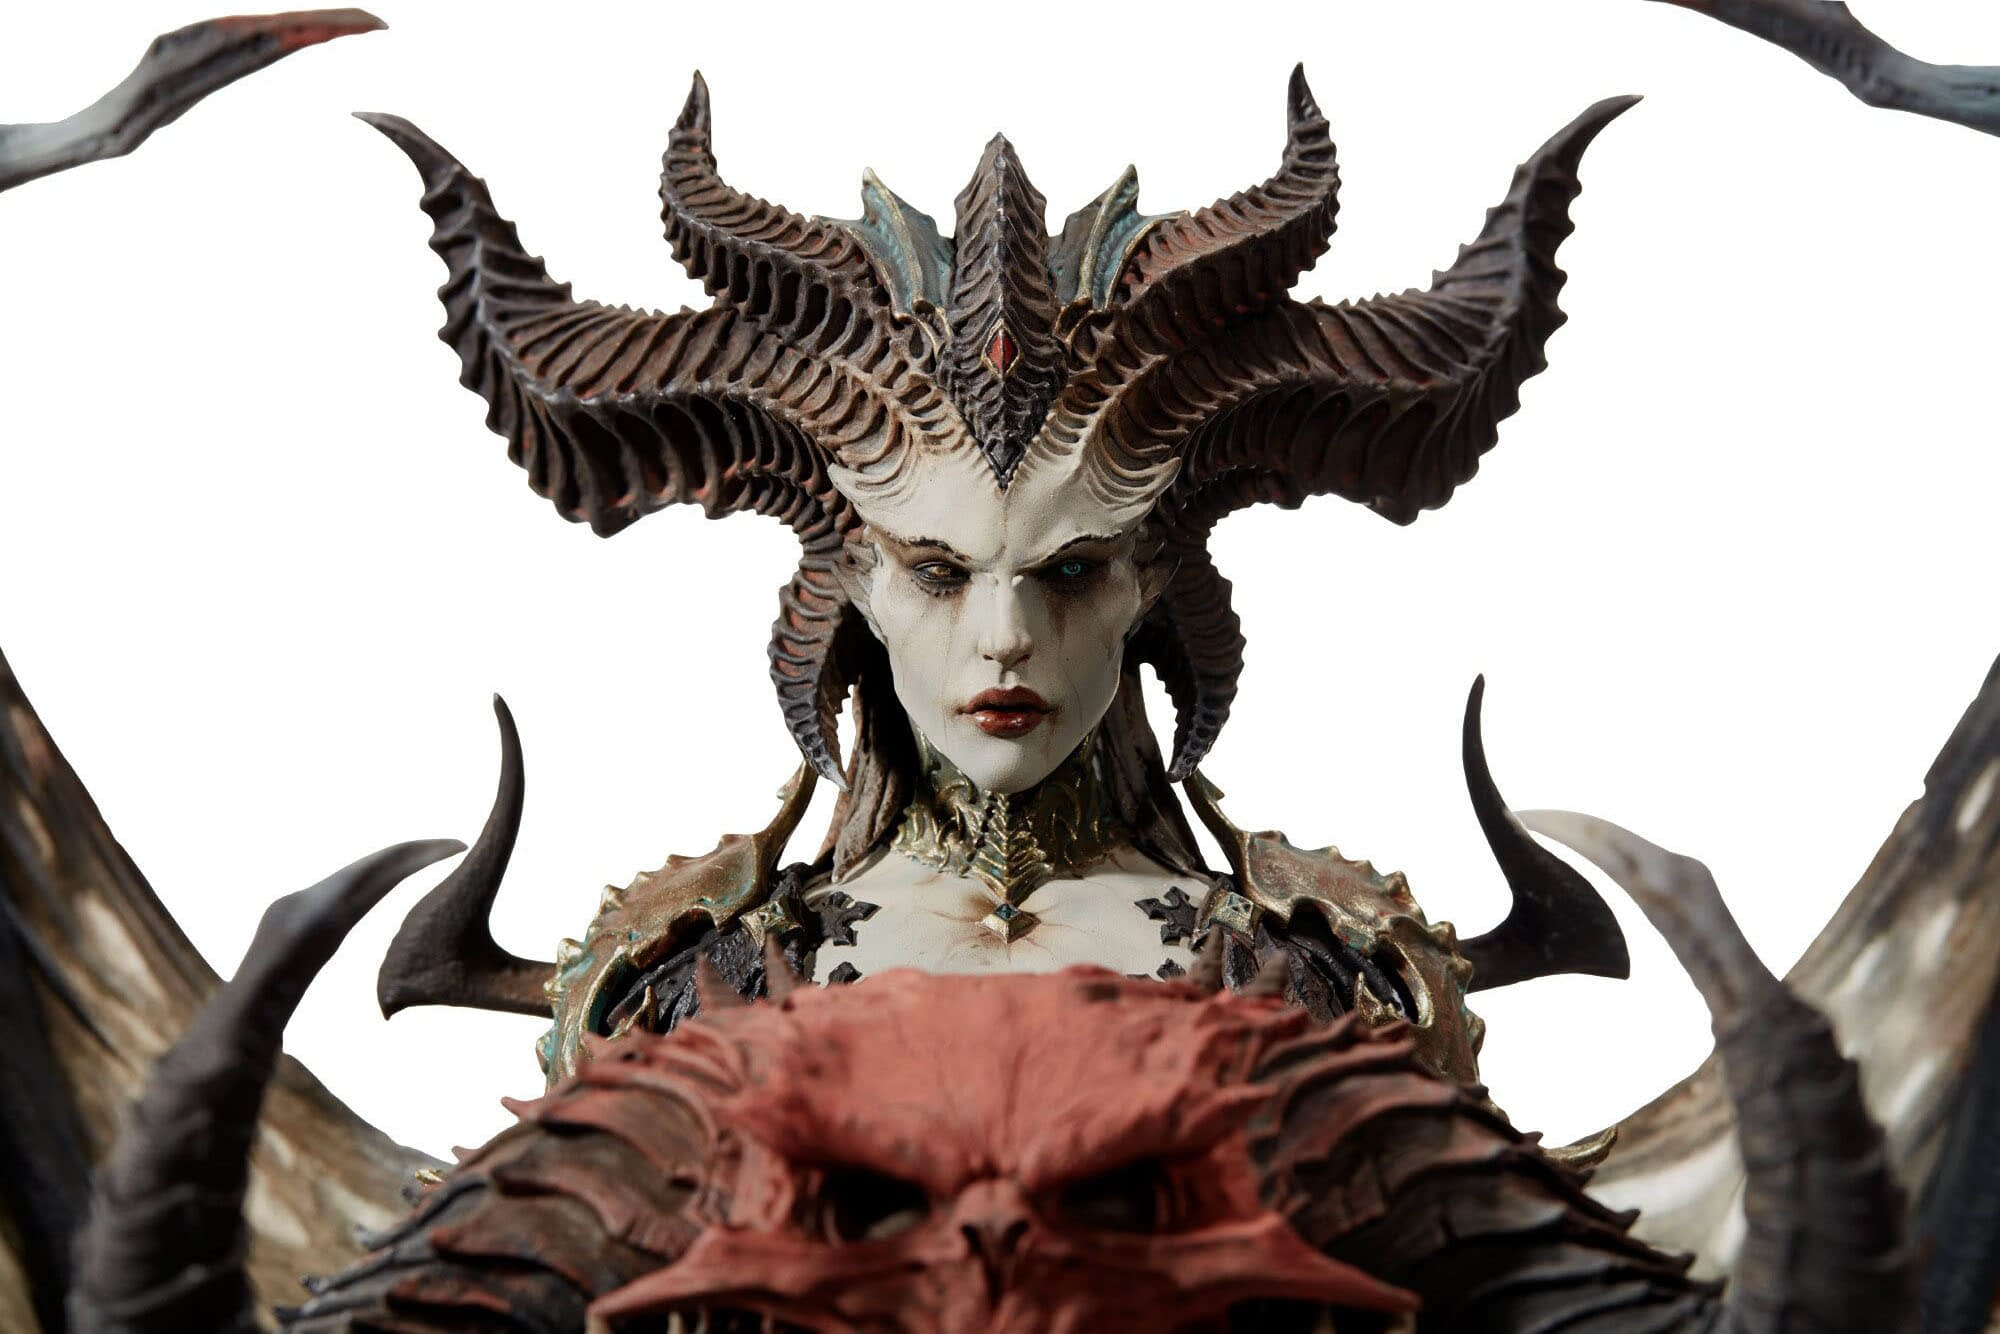 """Diablo IV"" Lilith Has Arrived in New Premium Statue from Blizzard"